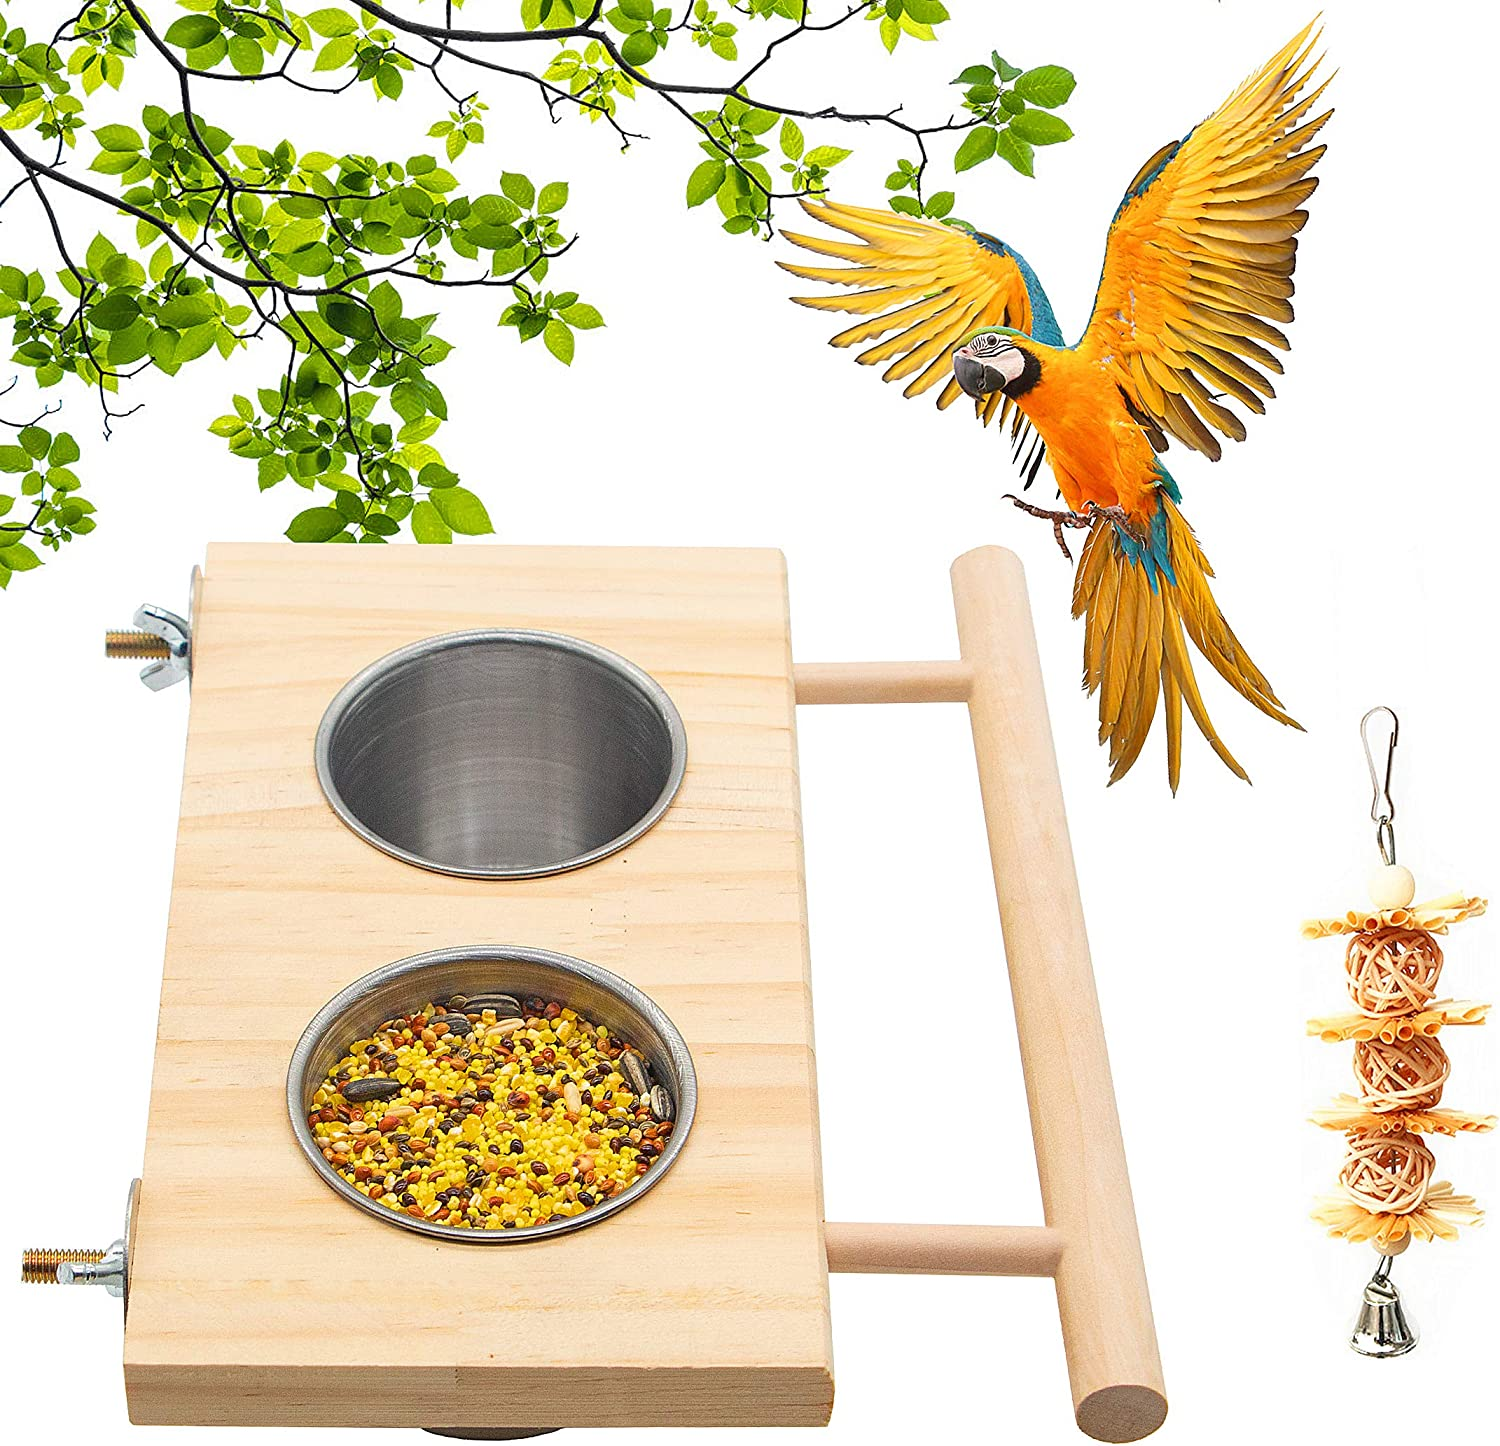 Bird Feeding Dish Cups,Hanging Stainless Steel Parrot Cage Feeder & Water Bowl with Wooden Platform for Parakeet Cockatiels Lovebirds Budgie